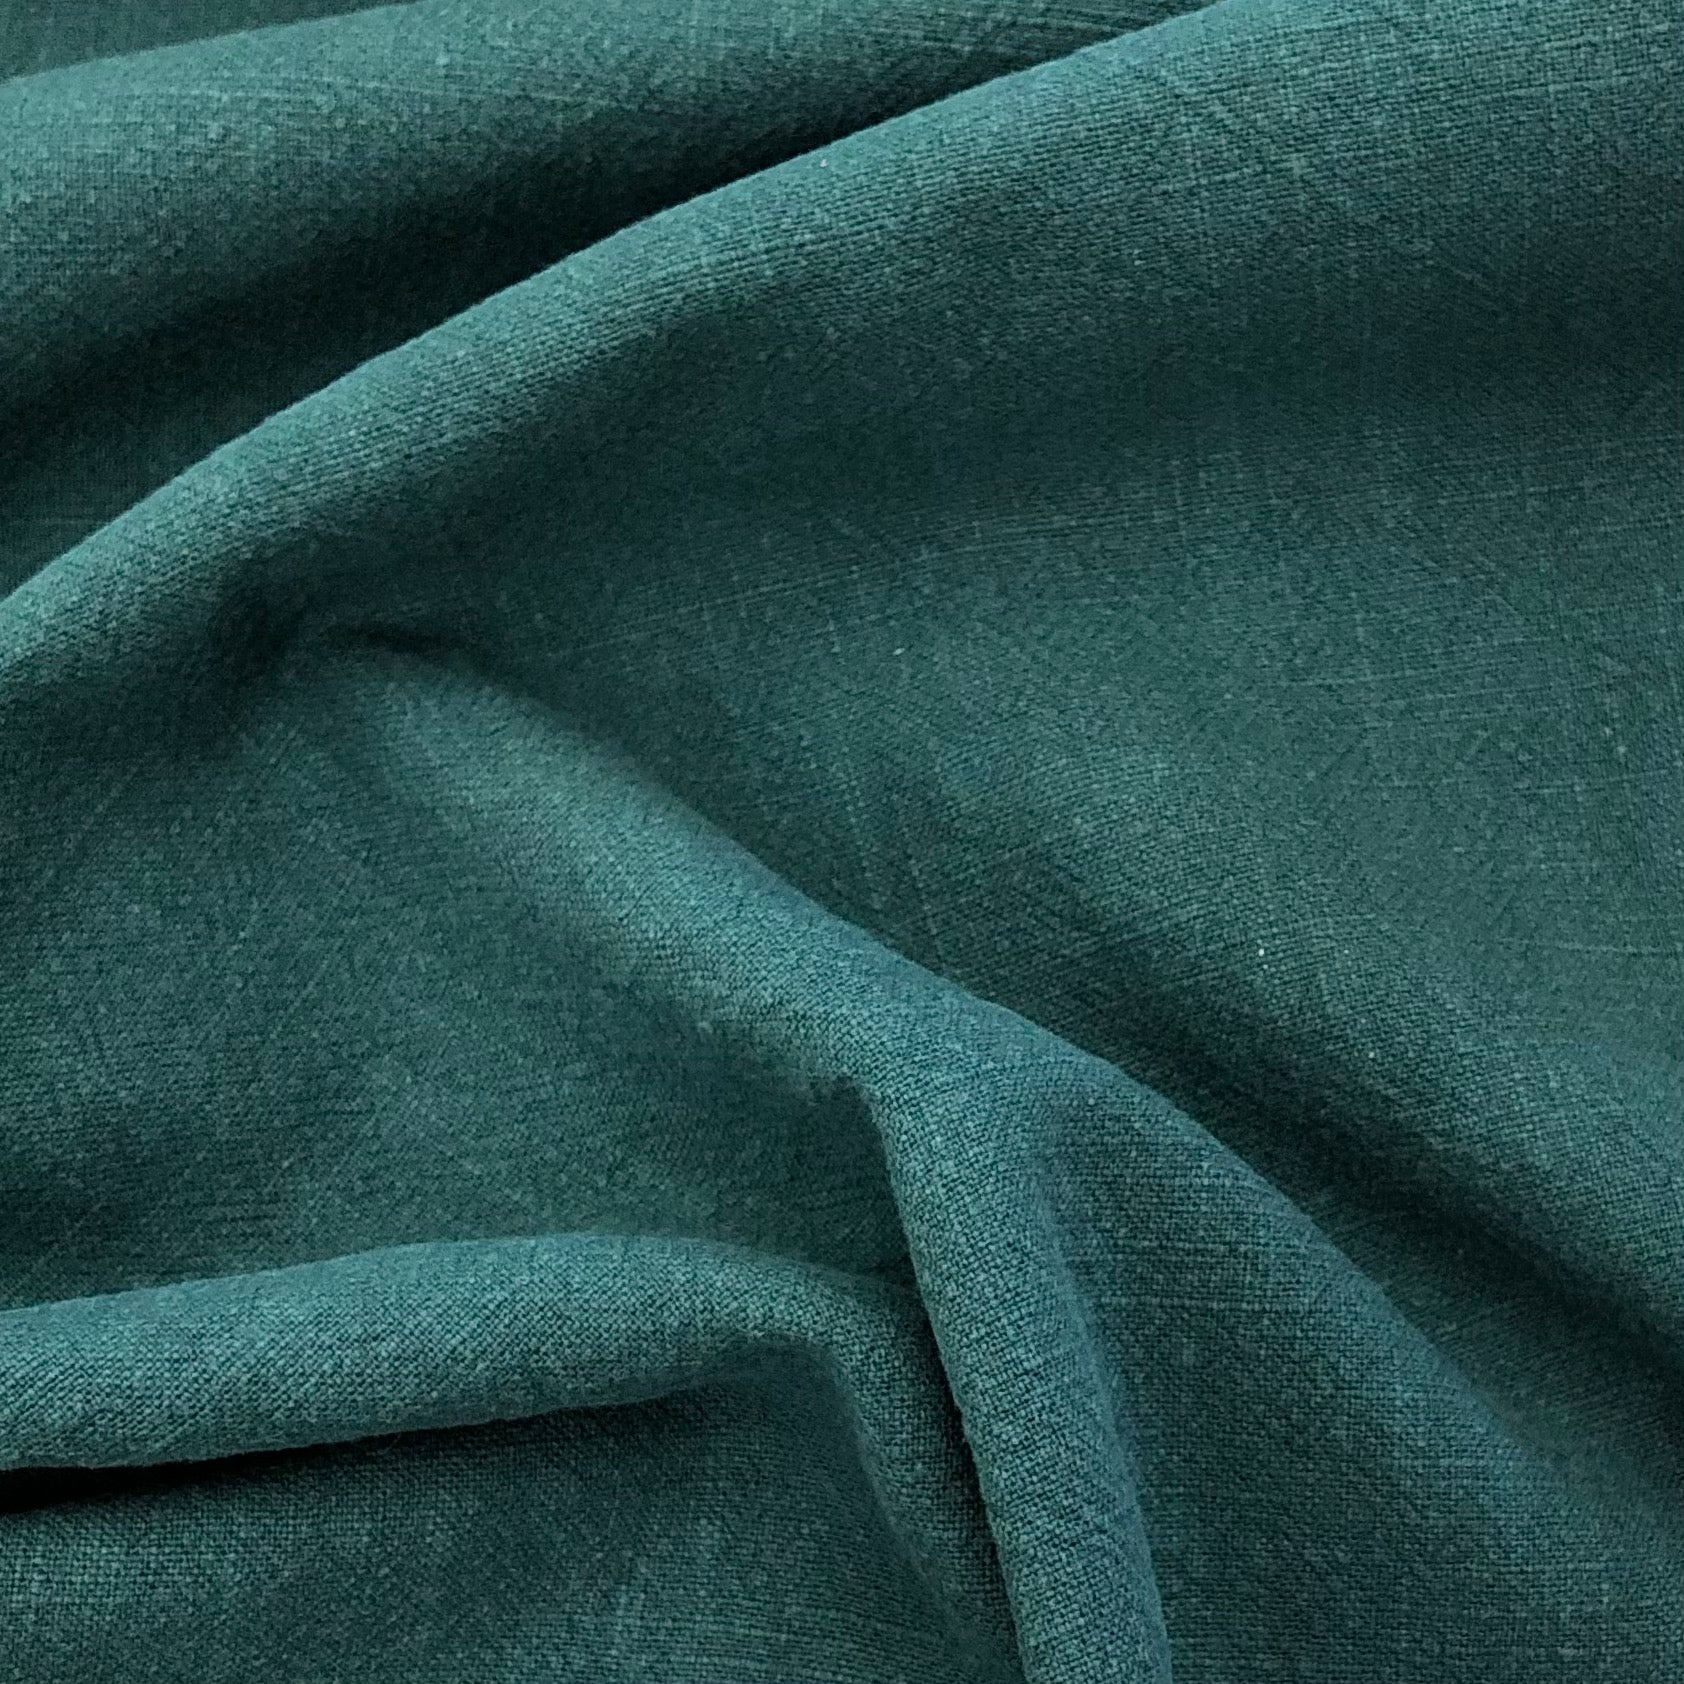 Teal Washed Ramie Linen Fabric